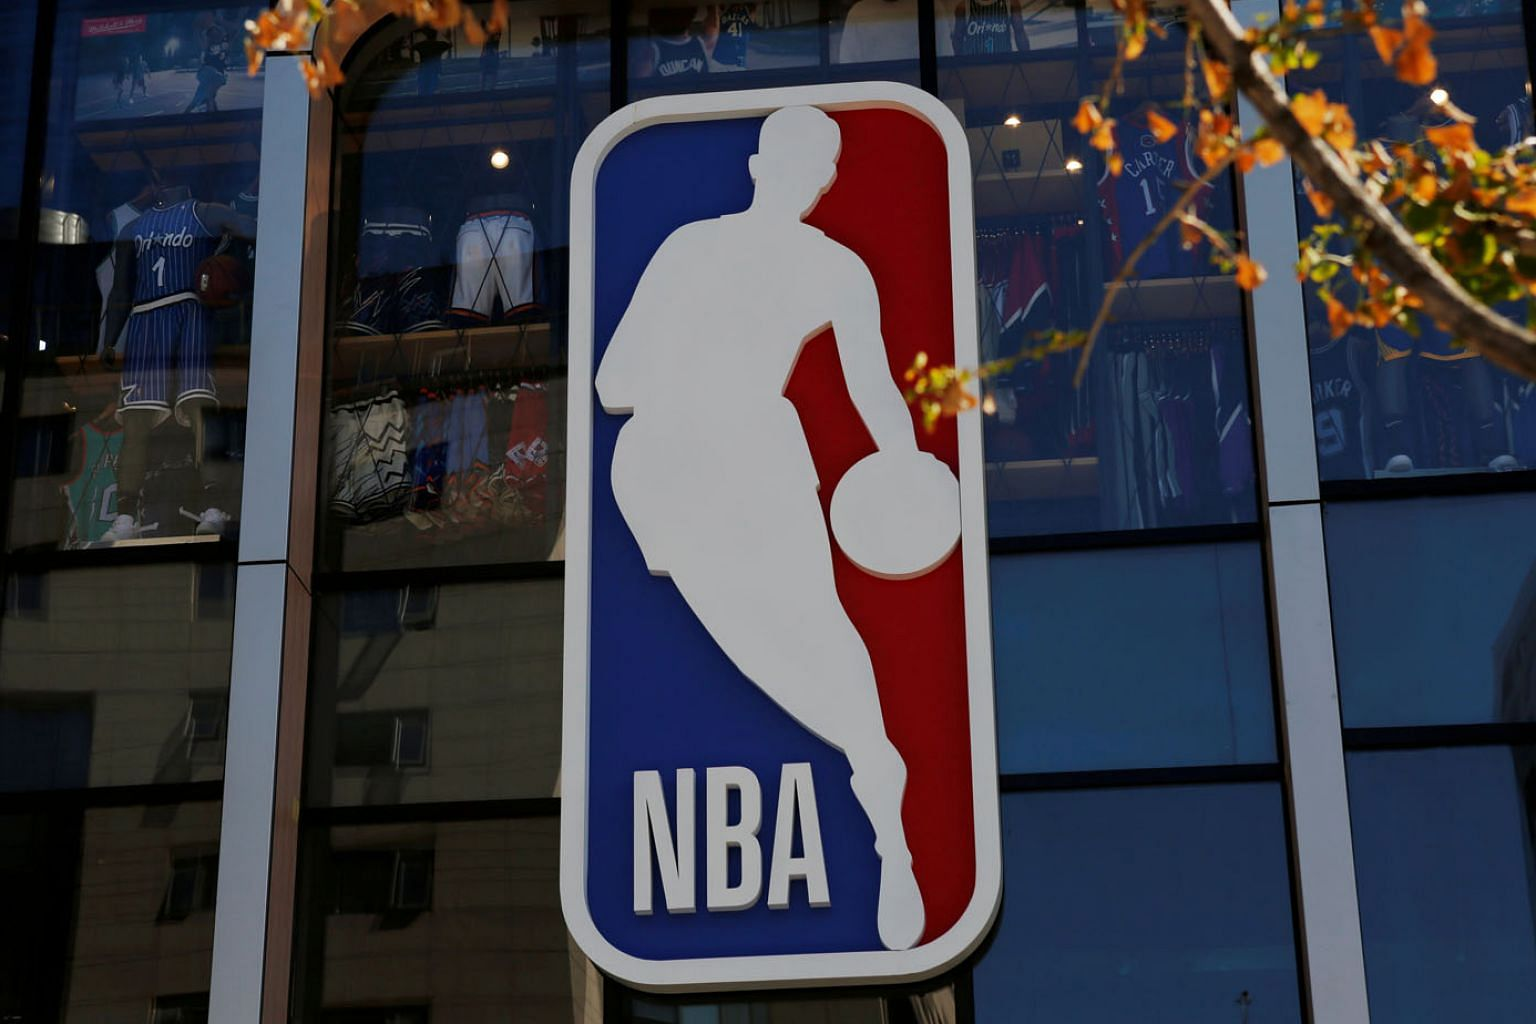 The NBA logo is seen at its flagship store in Beijing last year. The backlash has cast a cloud over its merchandising interests in China.